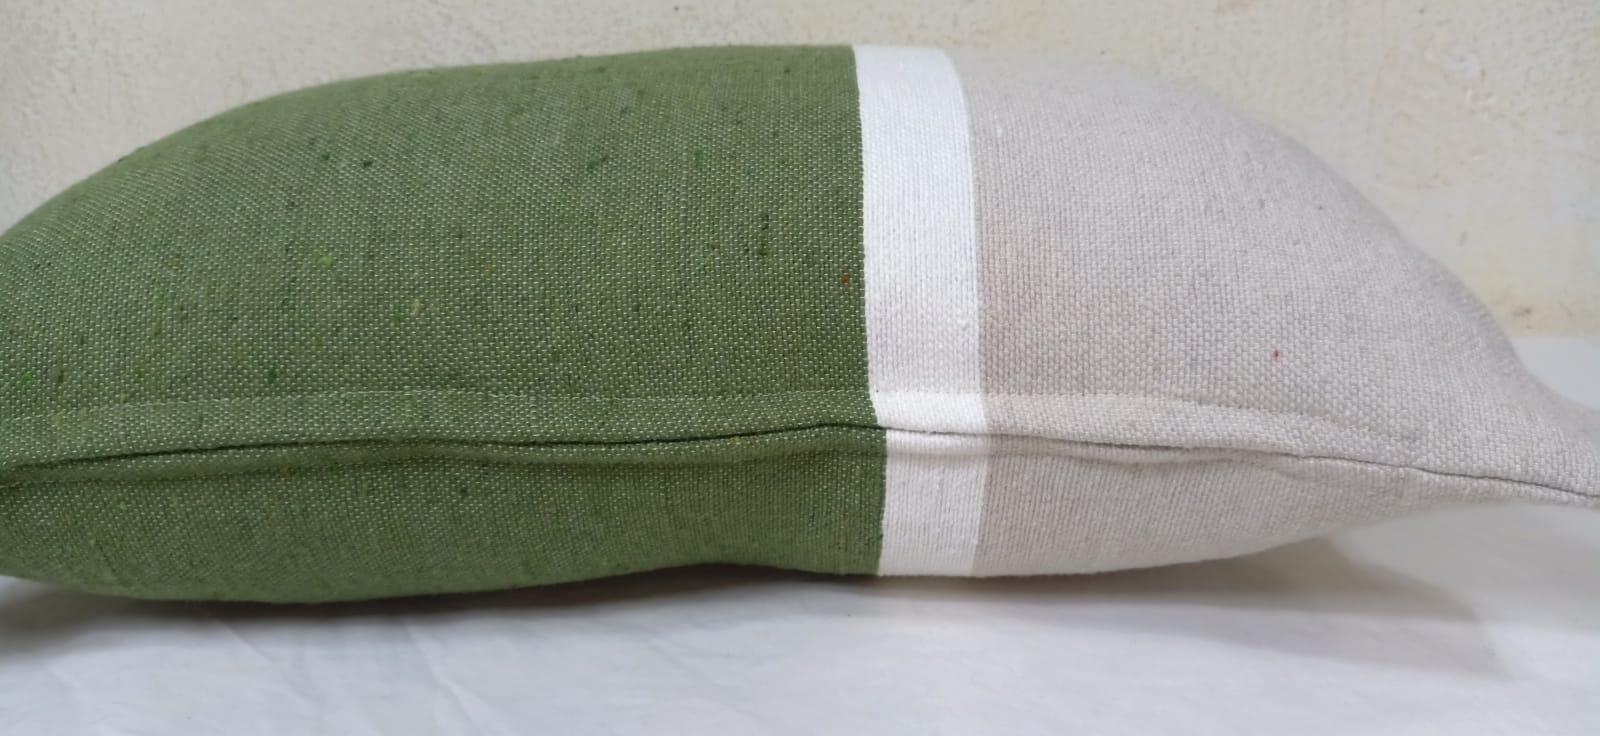 pillow  Green, White Morocco